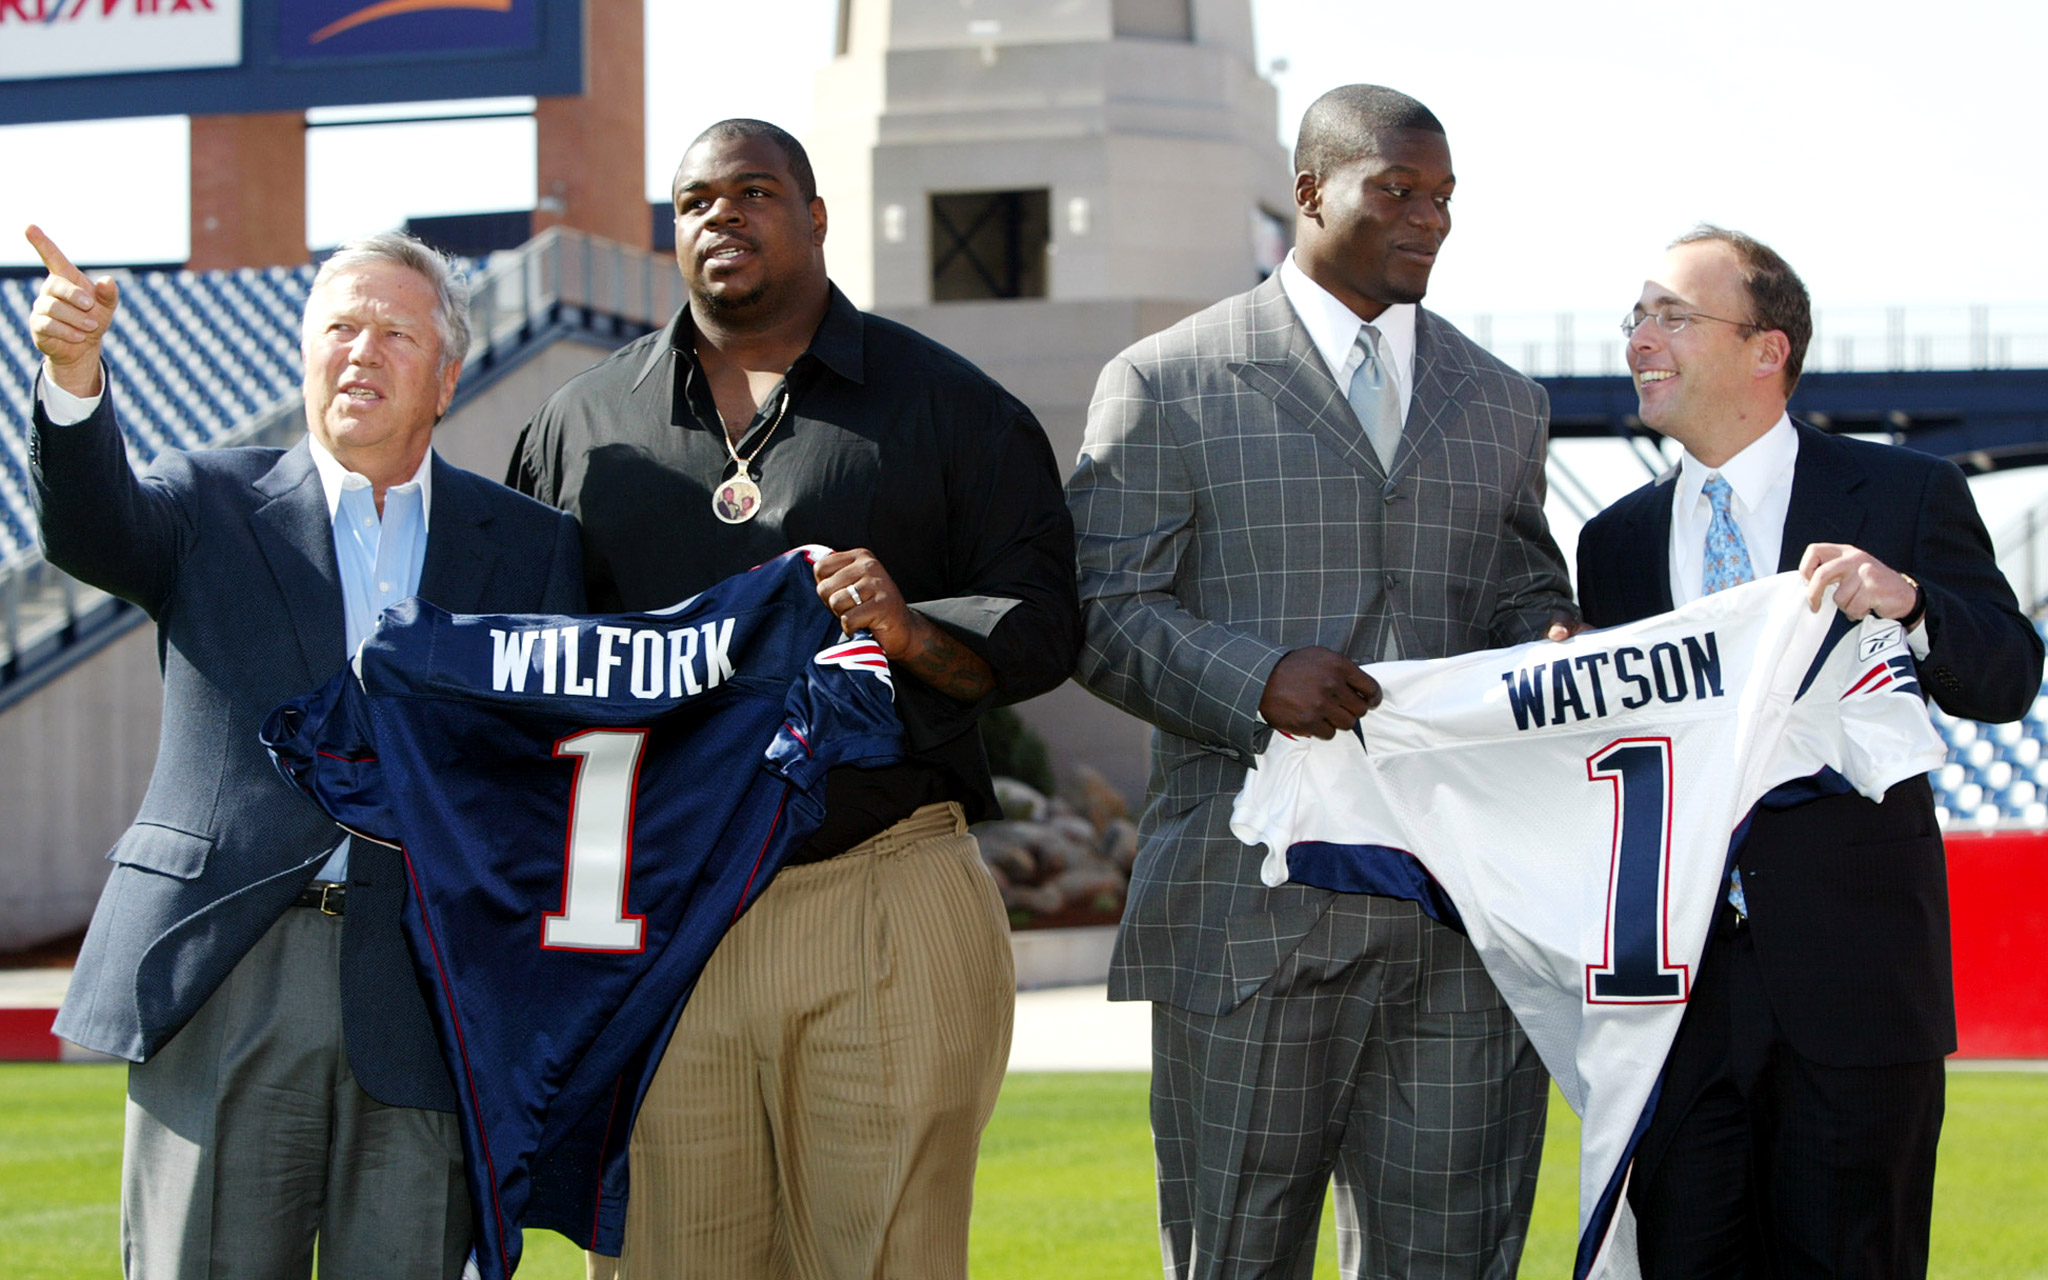 2004: Patience rewarded with Wilfork & Watson